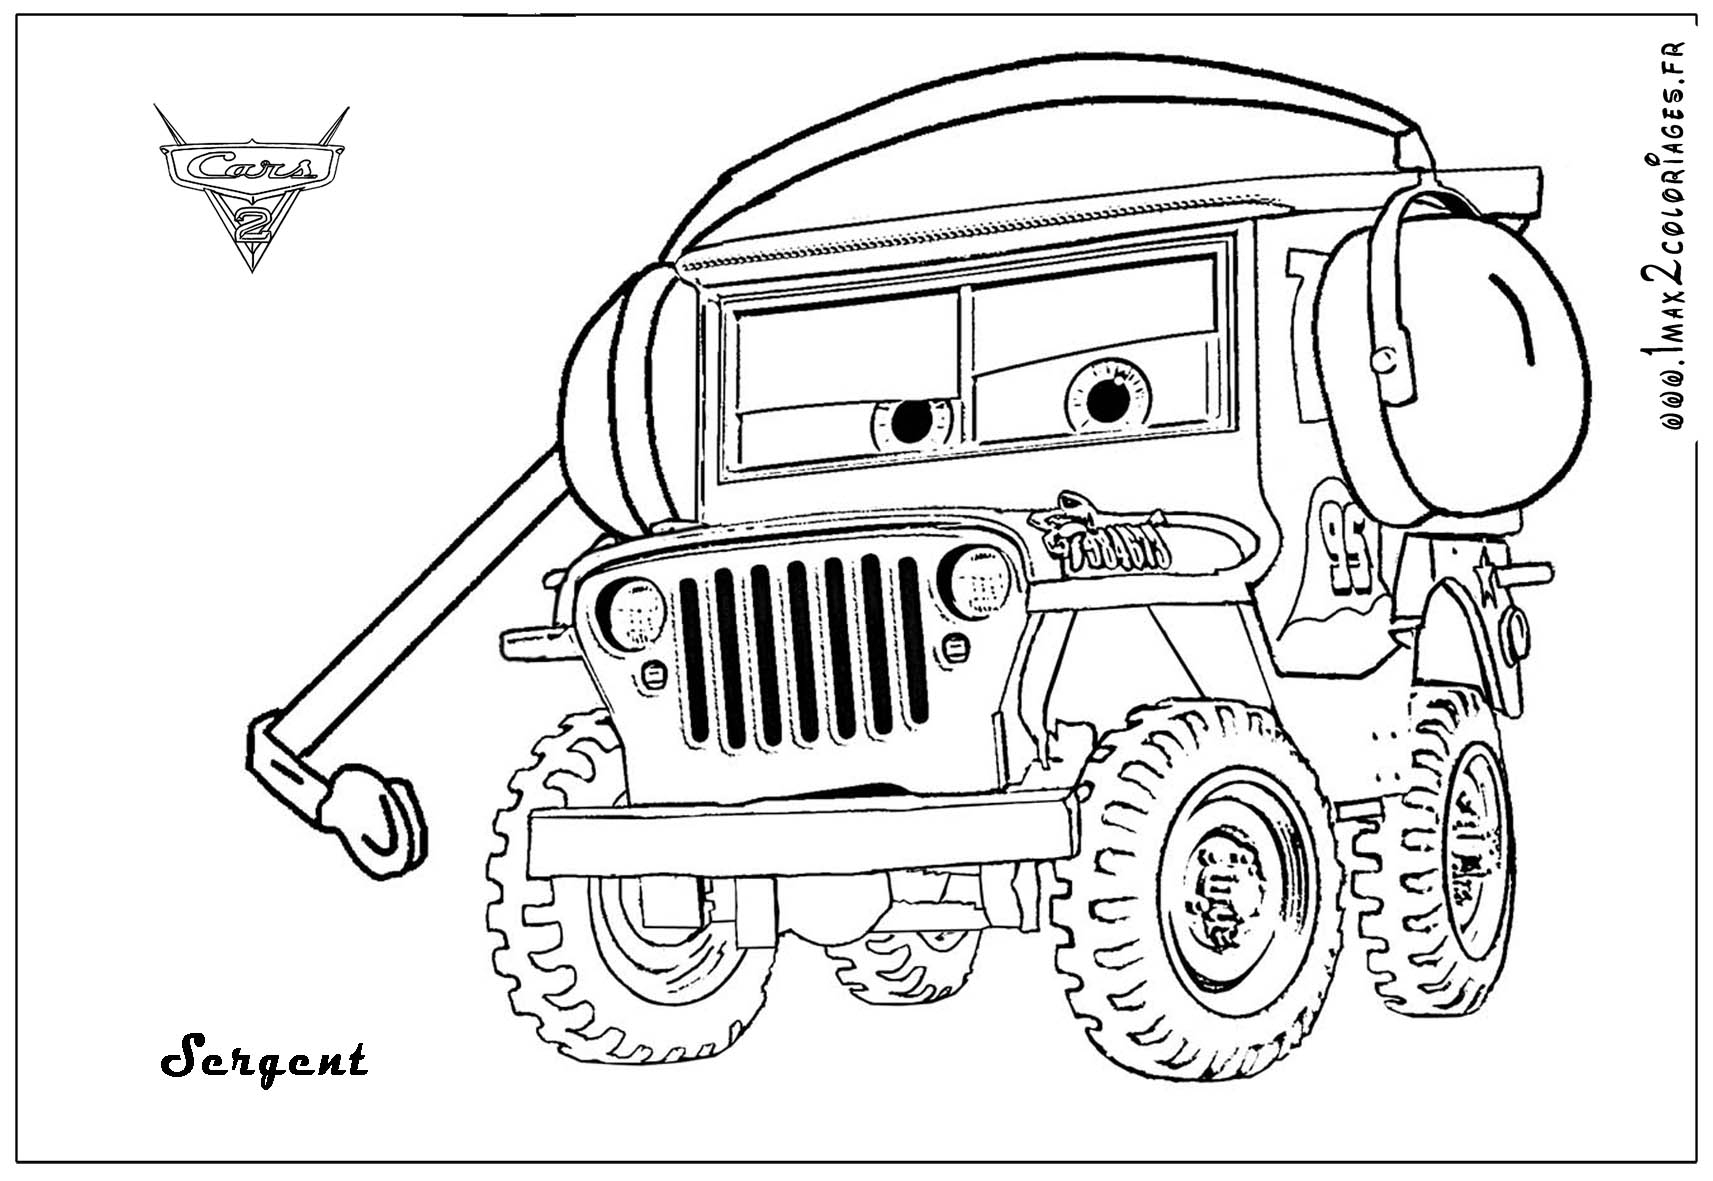 cars the movie coloring pages lightning mcqueen coloring pages cars 3 disney movie the movie pages coloring cars